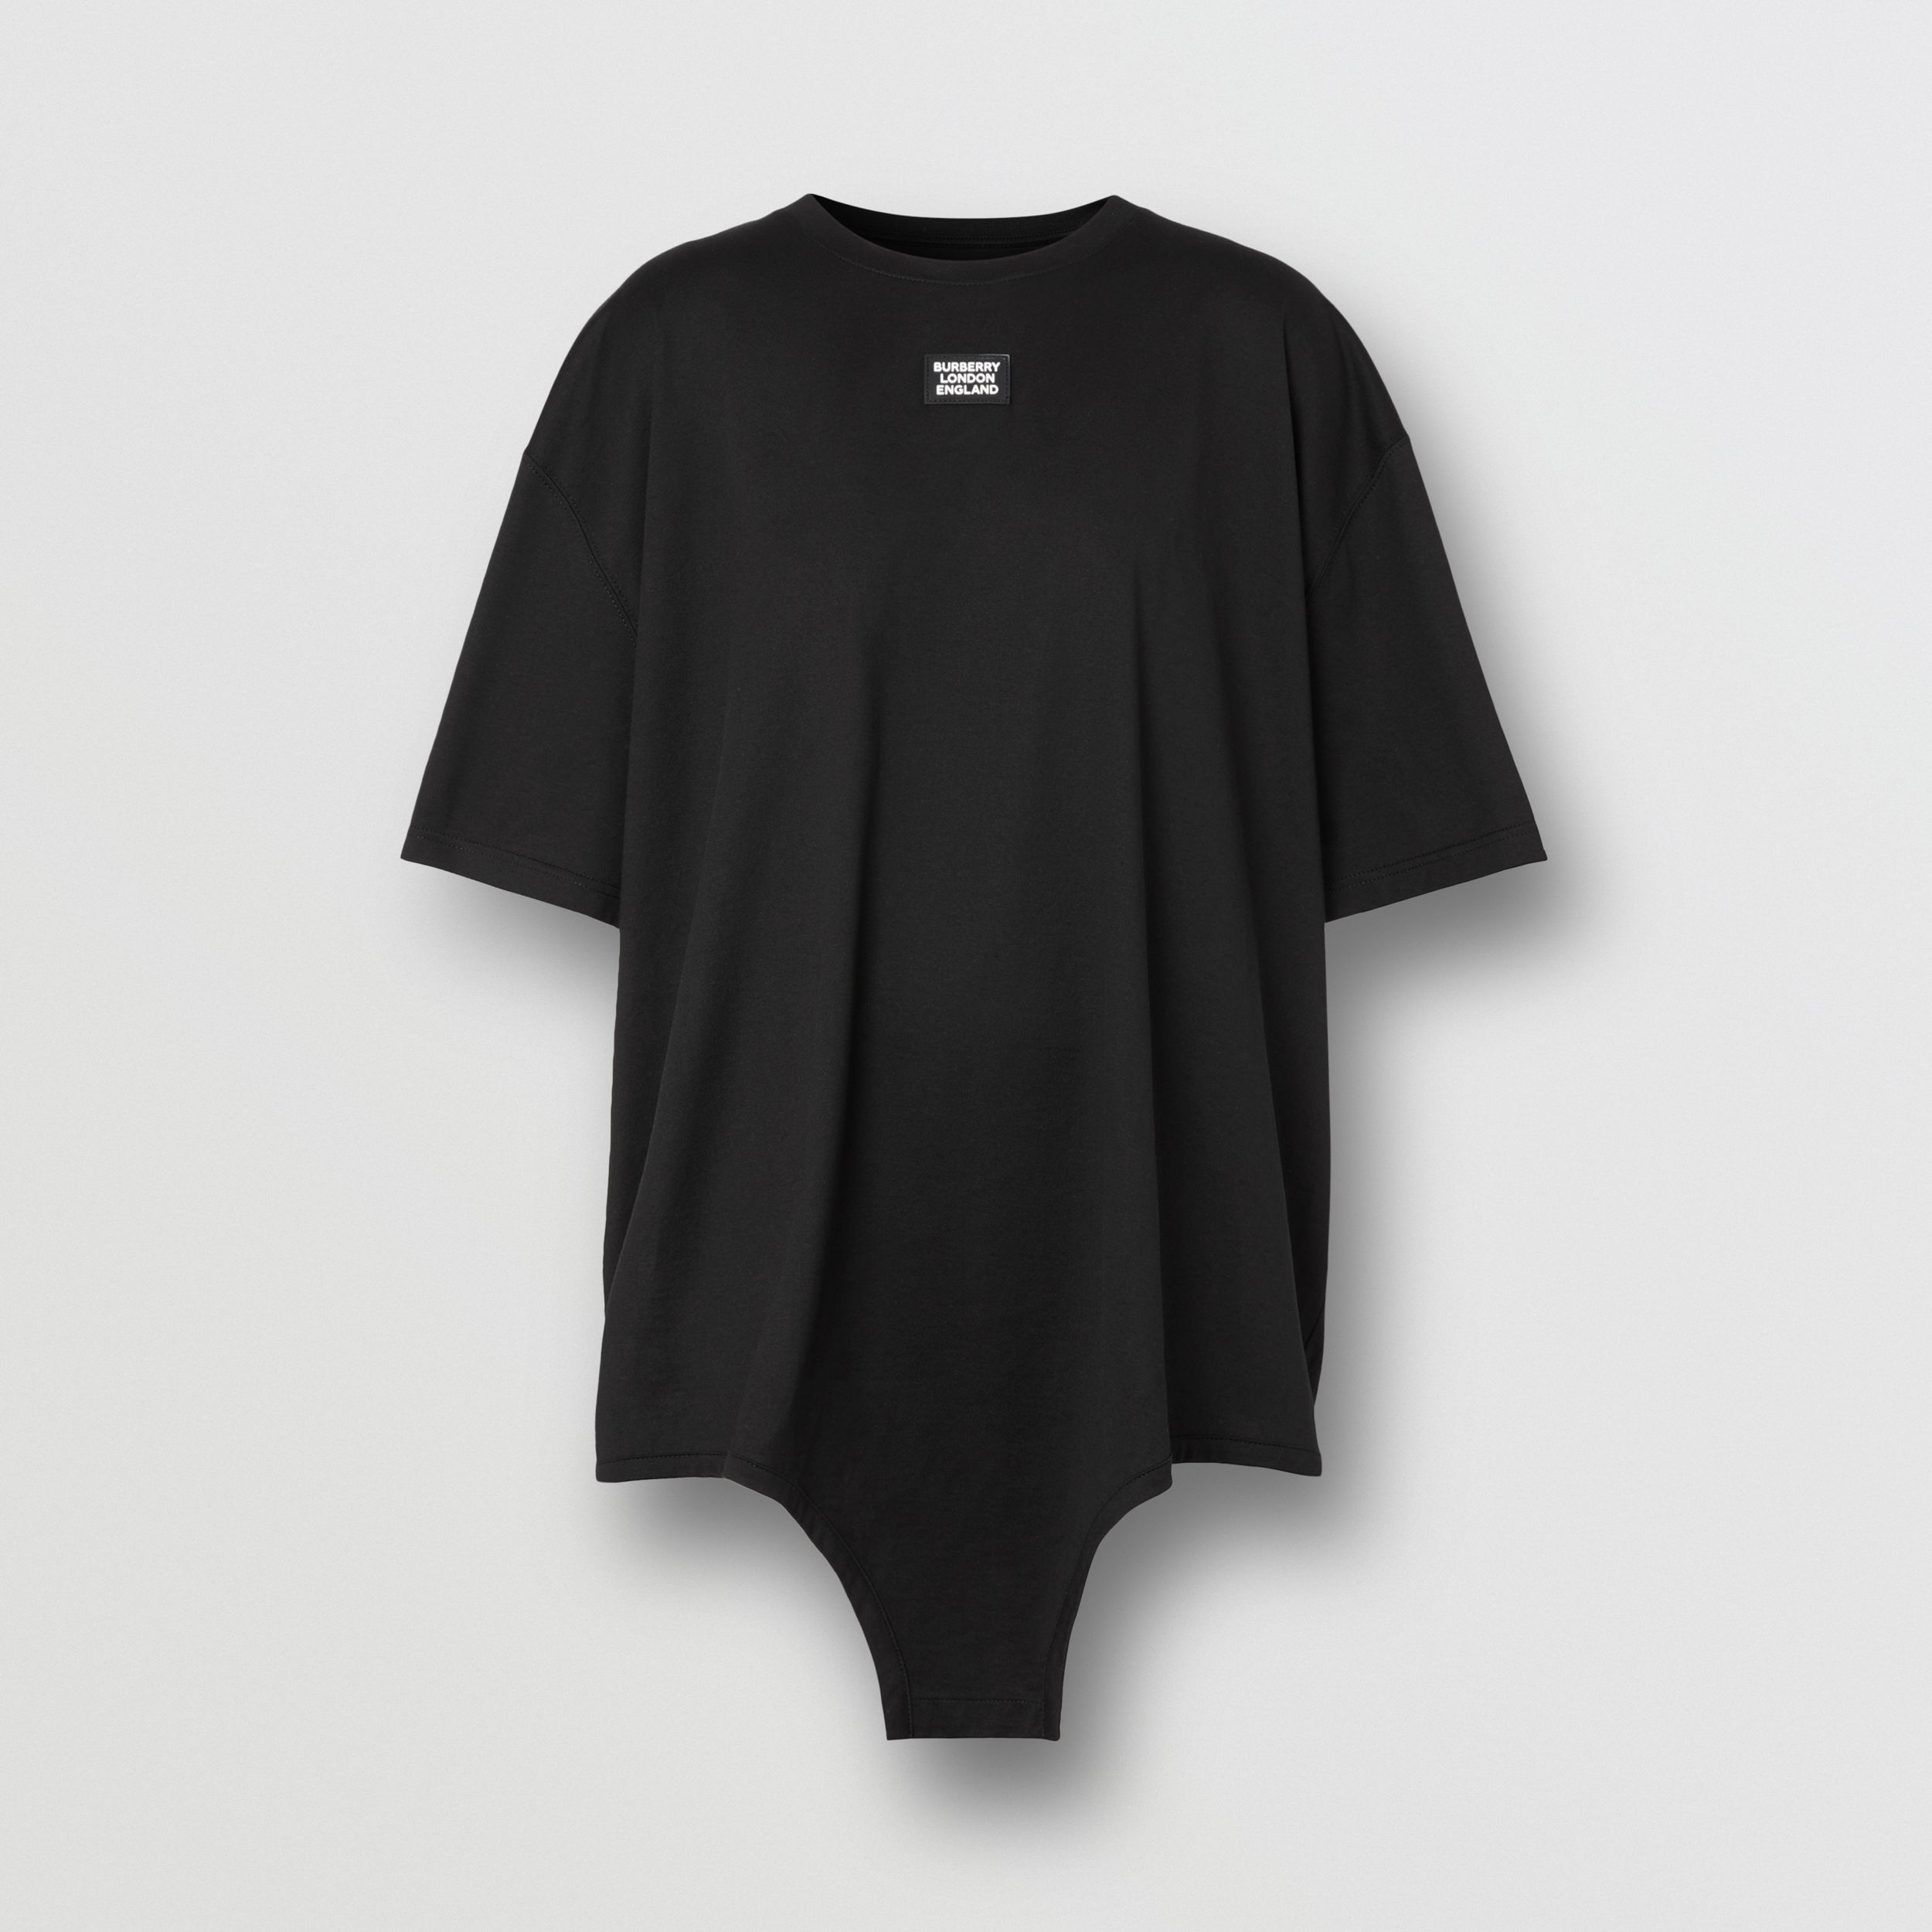 Cut-out Hem Logo Appliqué Cotton Oversized T-shirt in Black - Women | Burberry Canada - 4